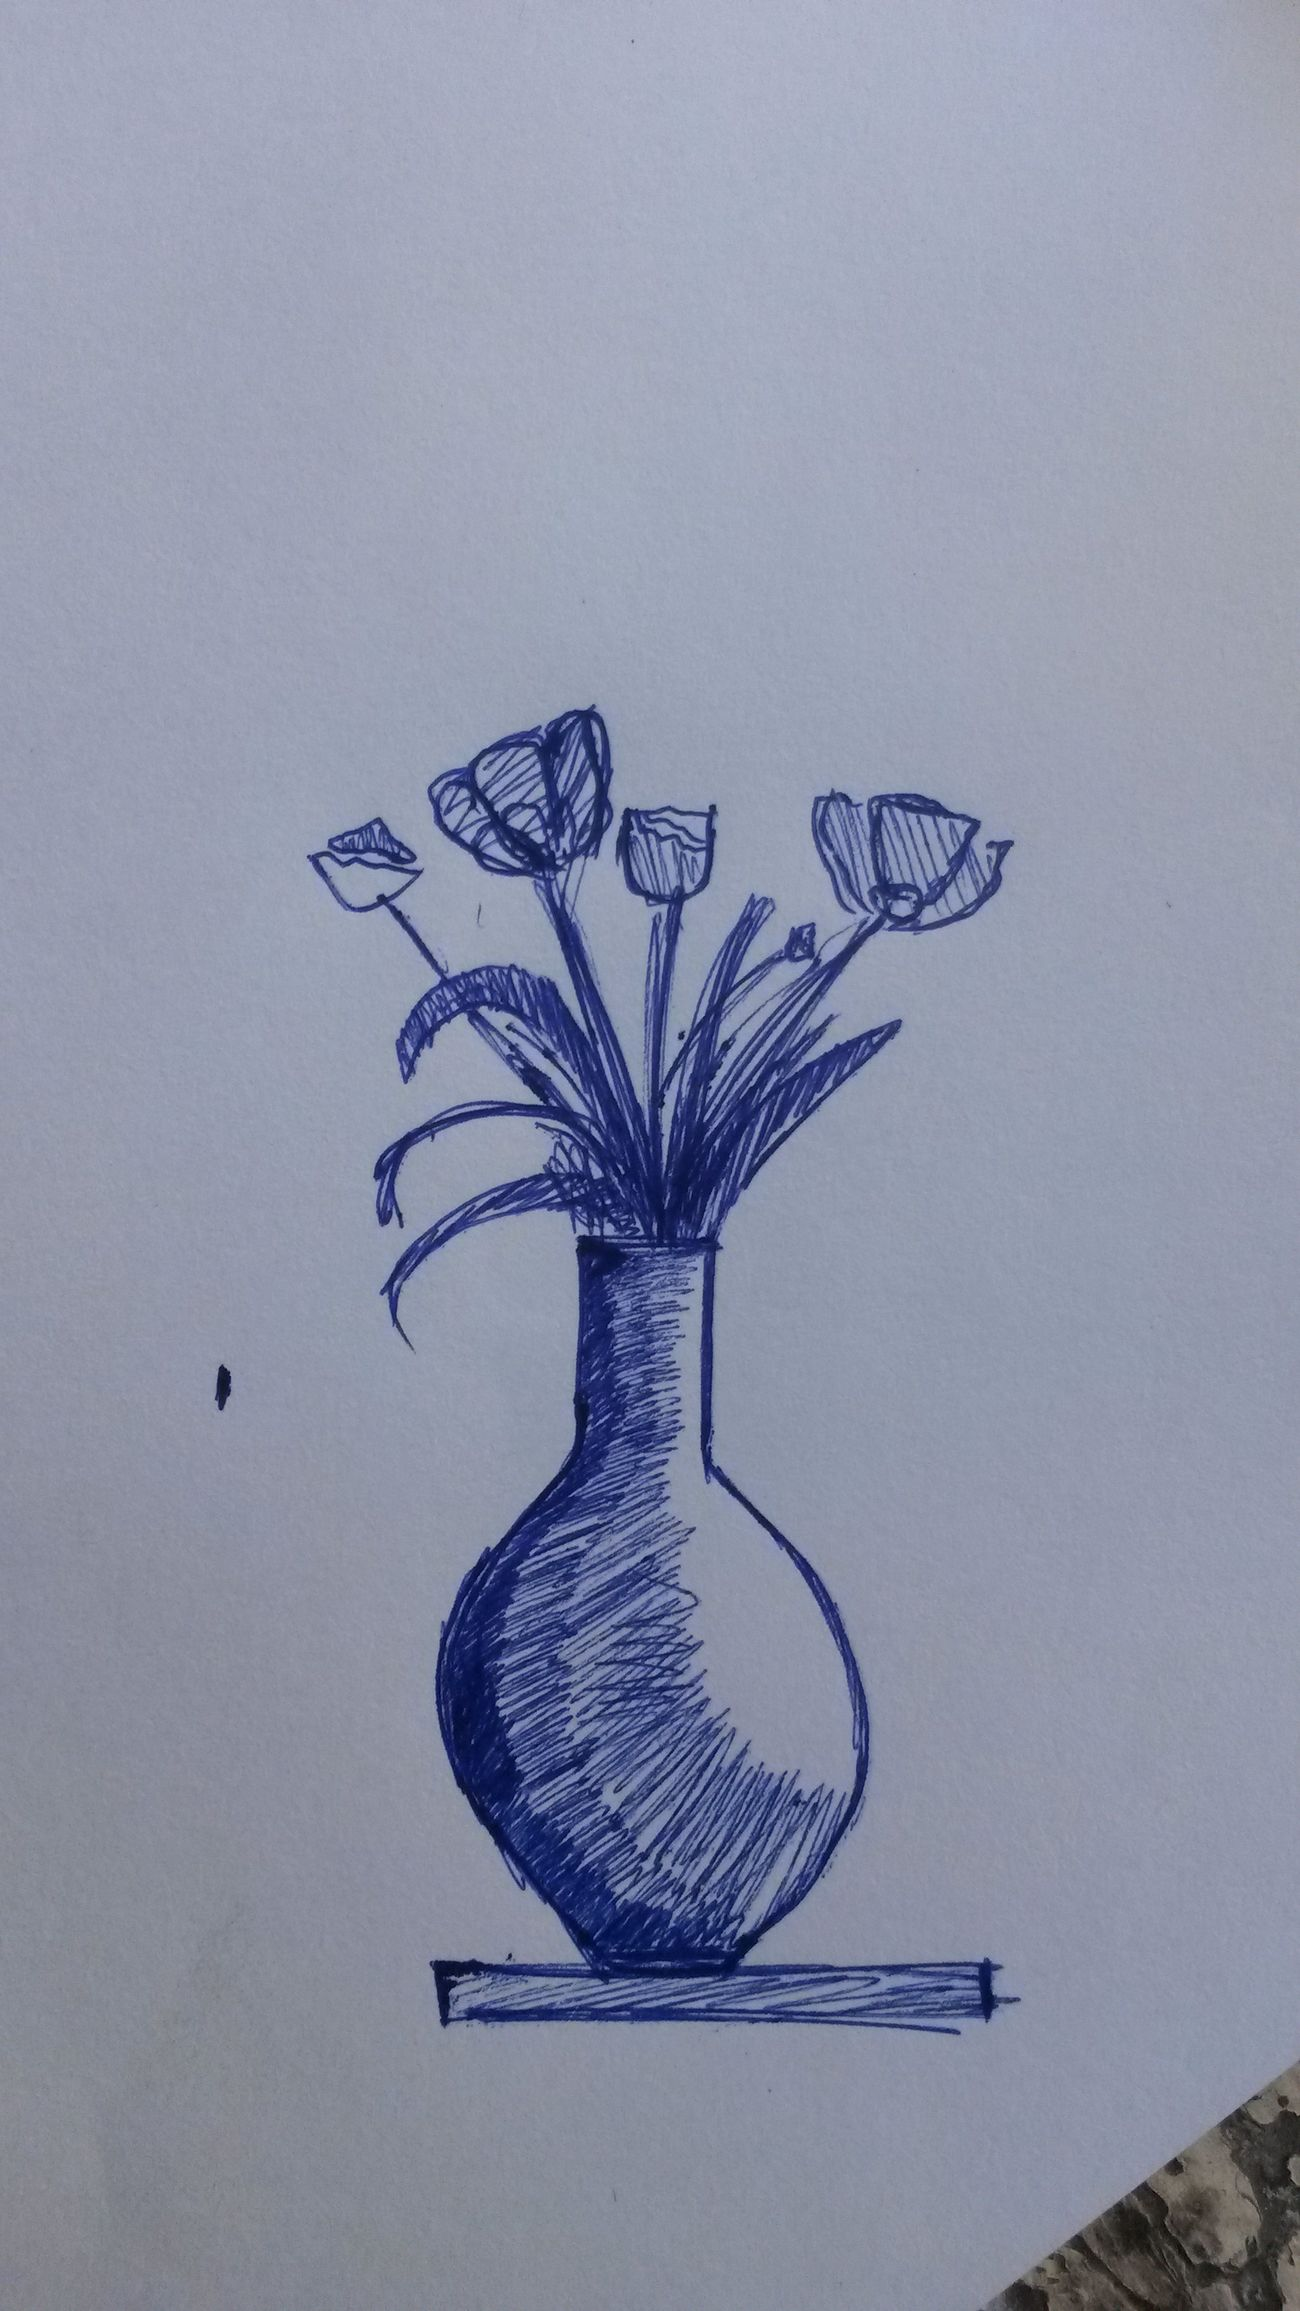 Sketch Paper Ink Plant Flower Indoors  Nature No People Painted Image Close-up Day Pen Sketching Flower Vase All Blue Fragility Freshness ♥♥♥